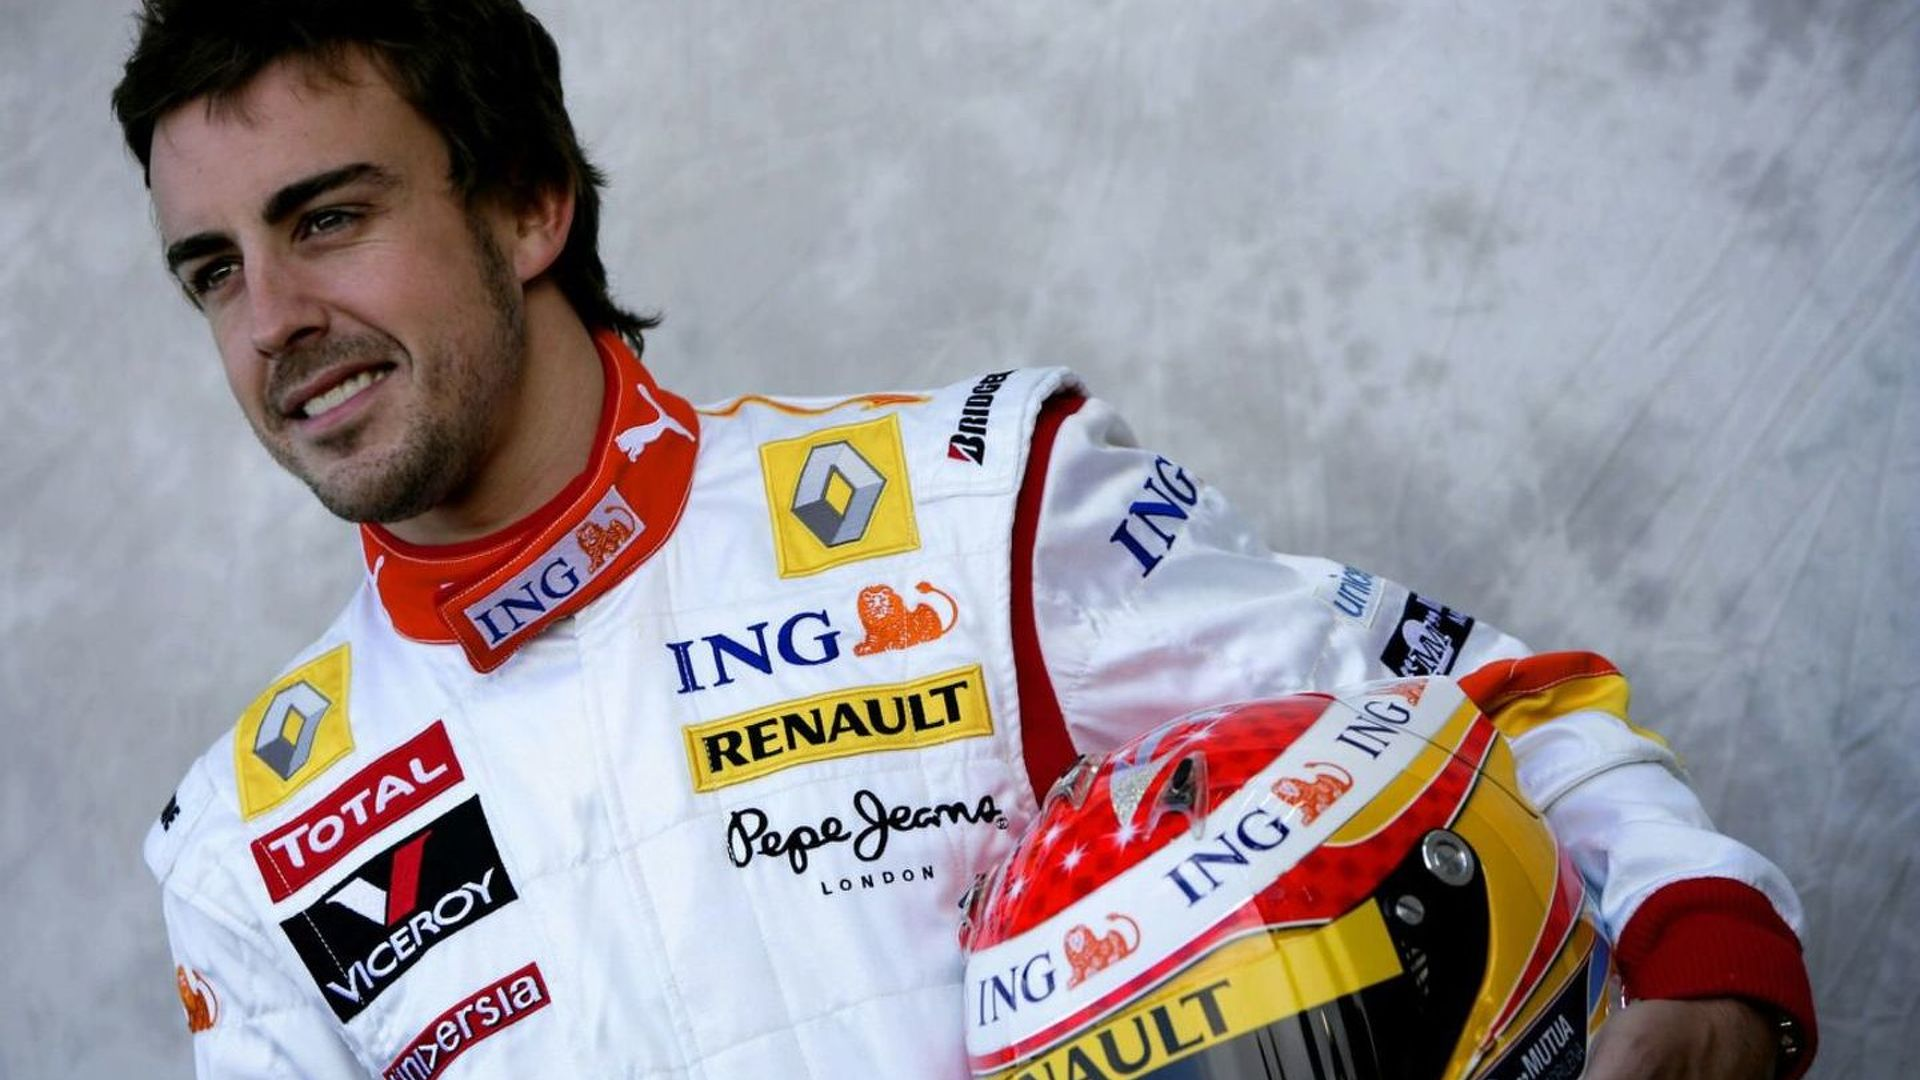 Surprised Alonso backs Briatore amid 'crash-gate'